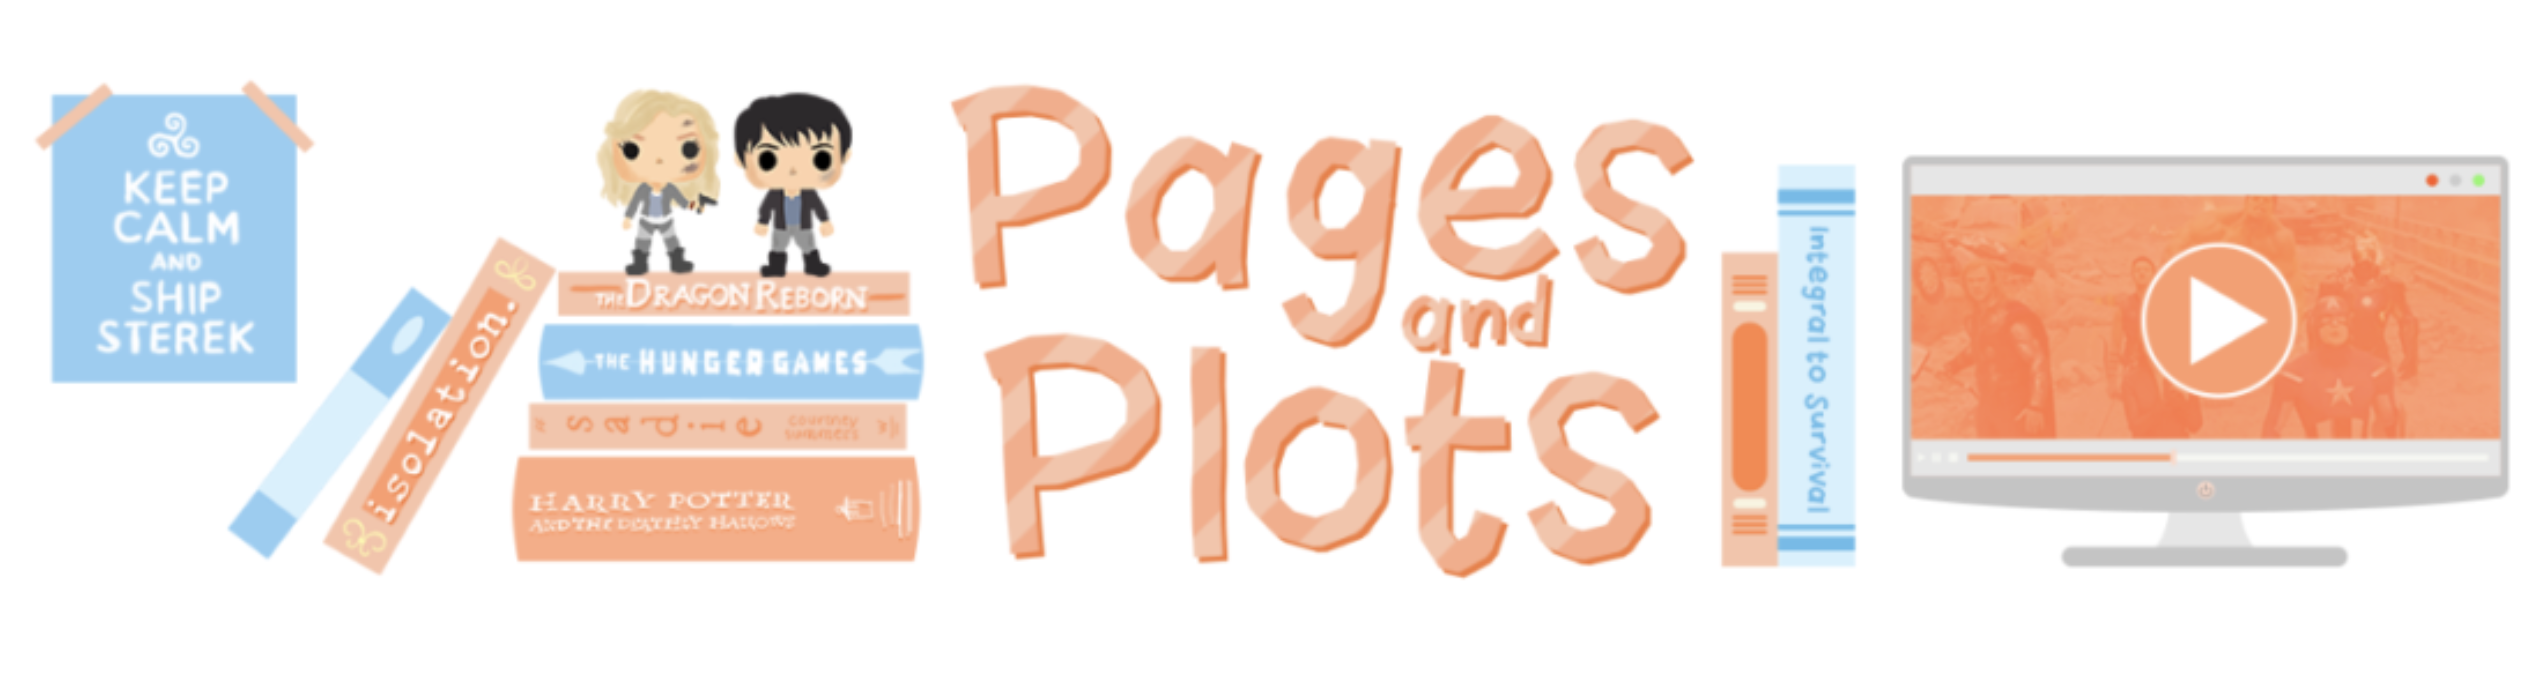 Pages & plots